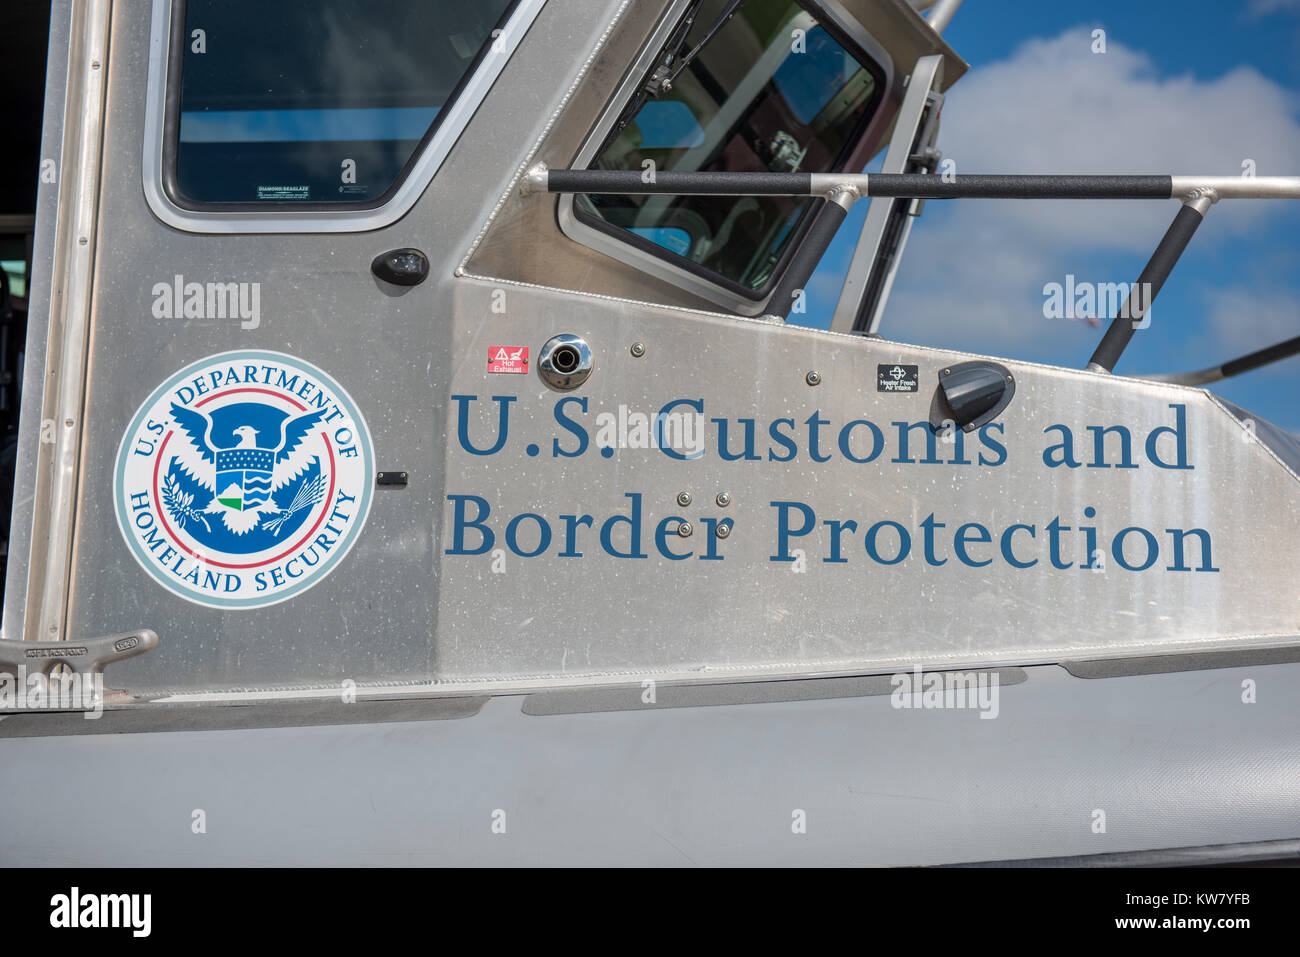 Oshkosh, WI - 24 July 2017:  A US customs and border control homeland security sign on a boat - Stock Image